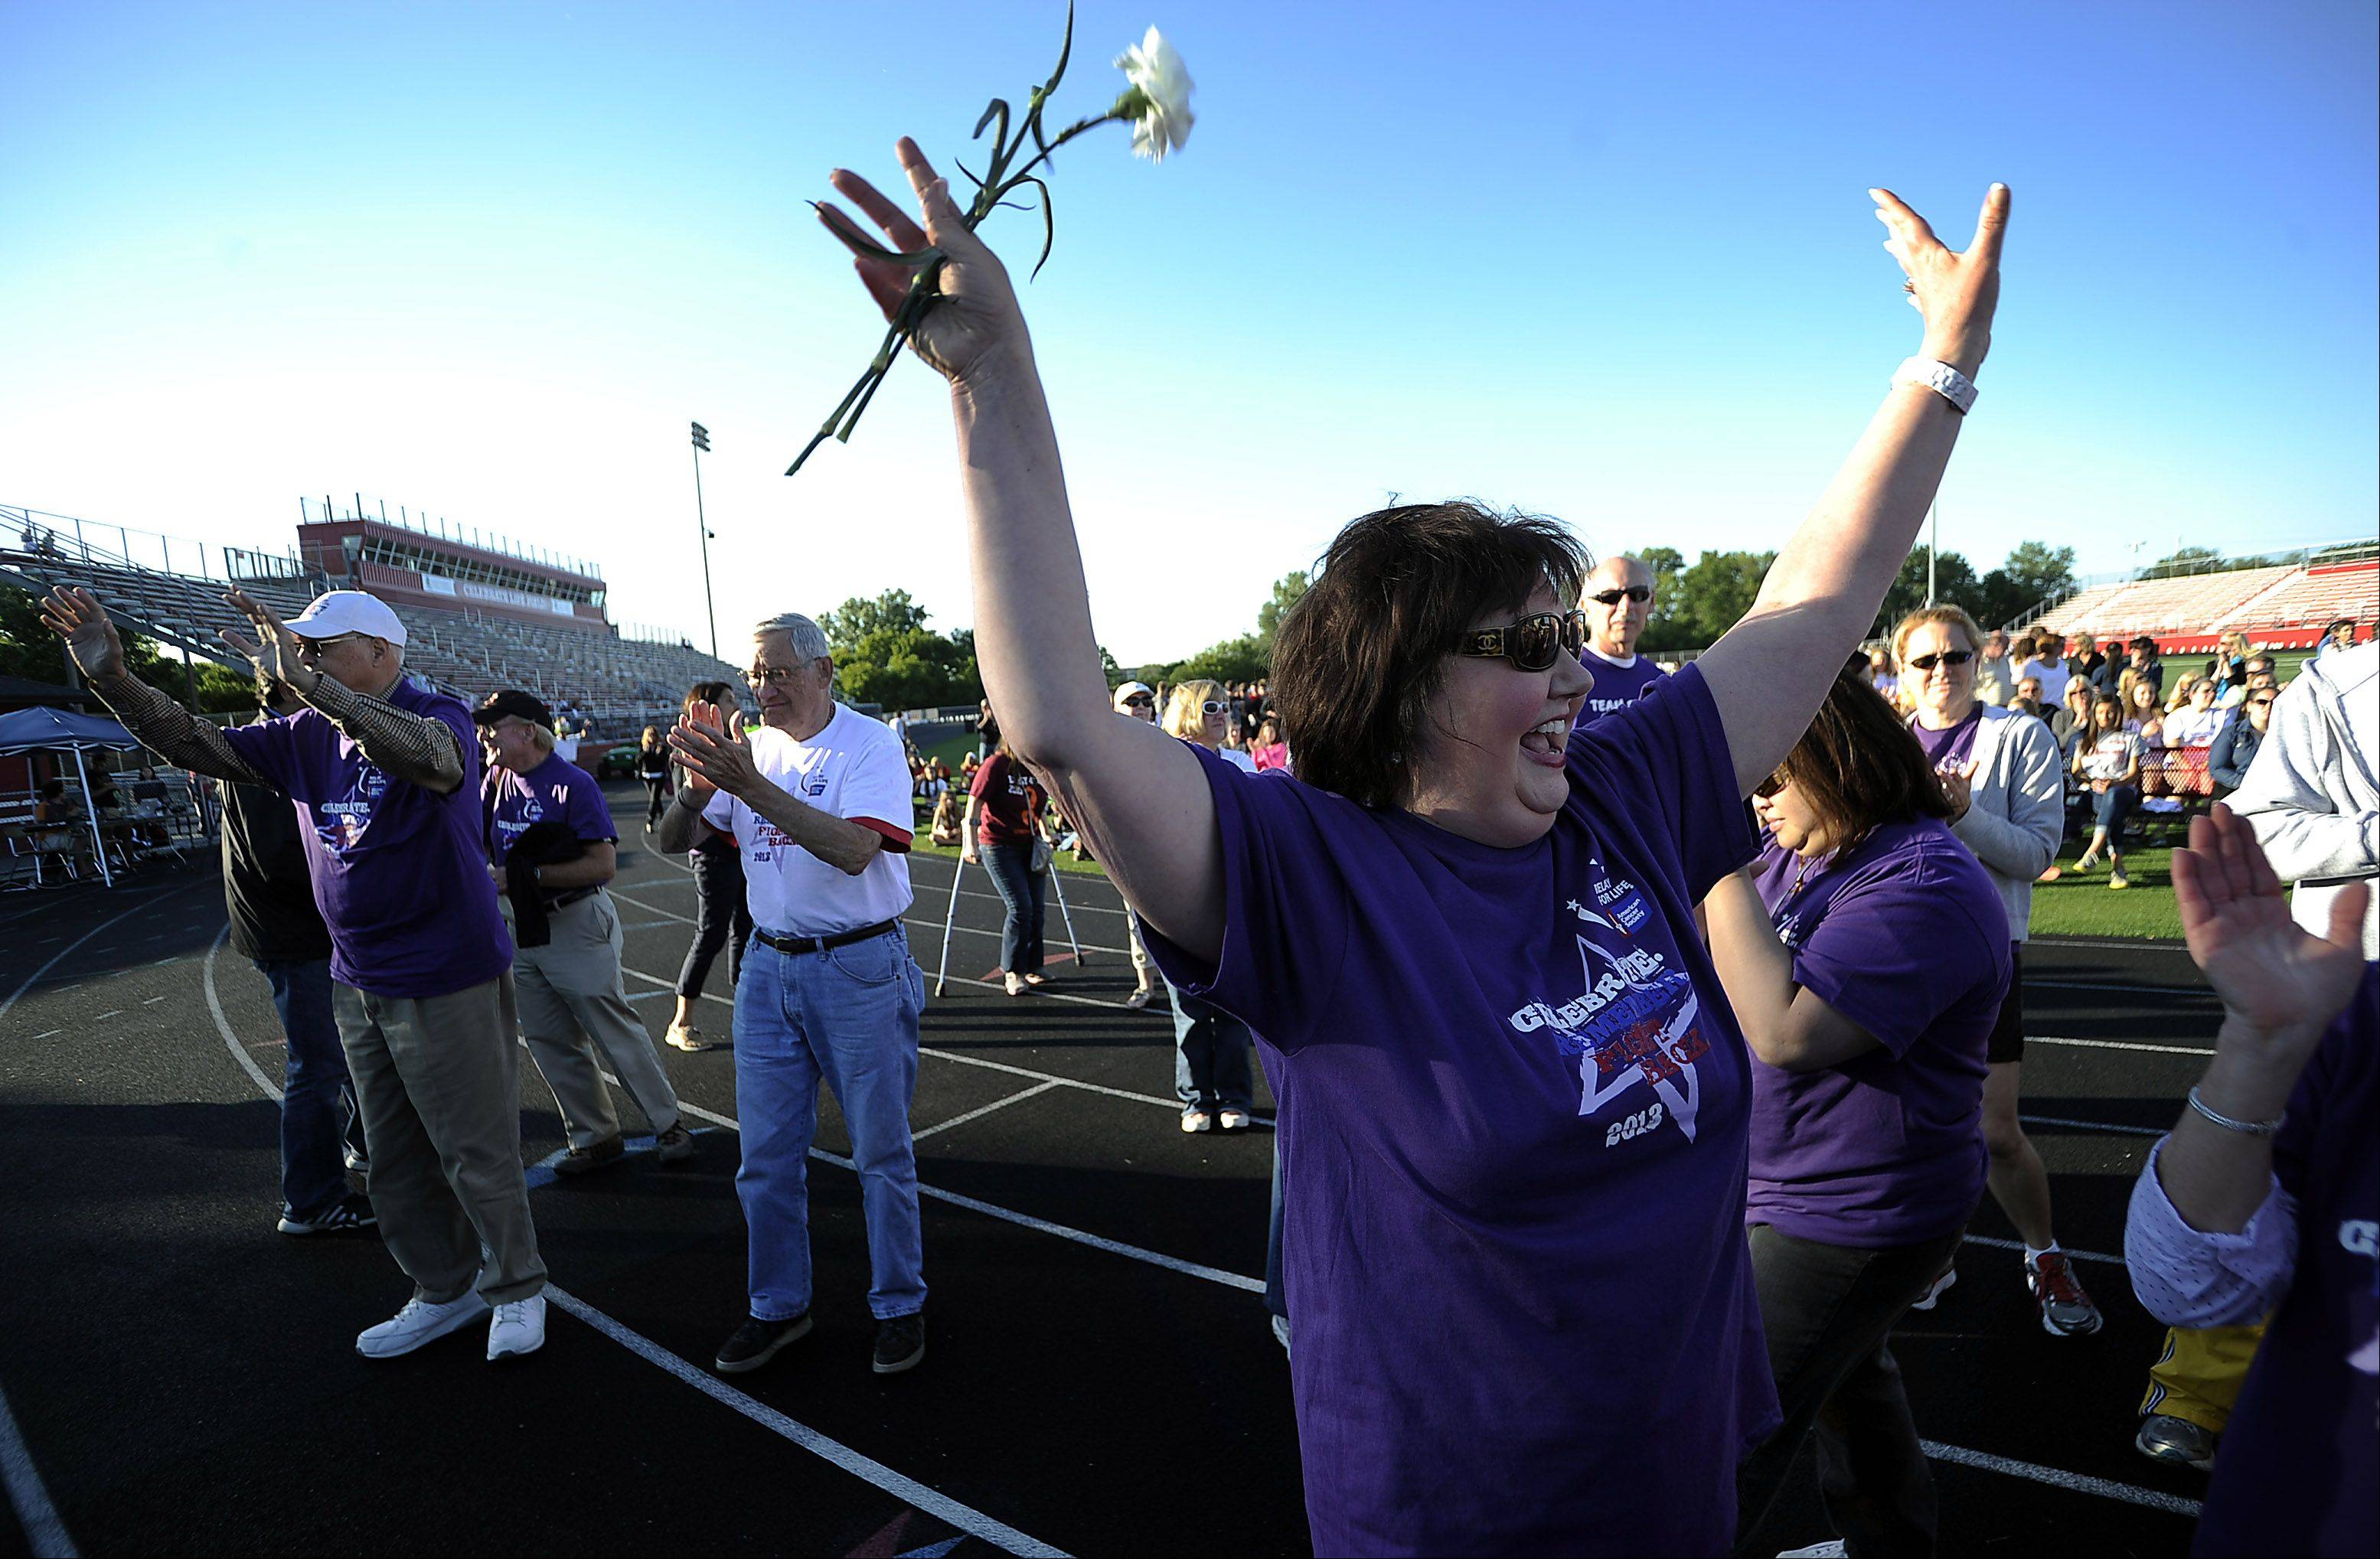 Wendy Goodman, of Crystal Lake, who is a 20-year survivor of cancer, celebrates life with others around her at Barrington's Relay For Life at Barrington High School Friday.